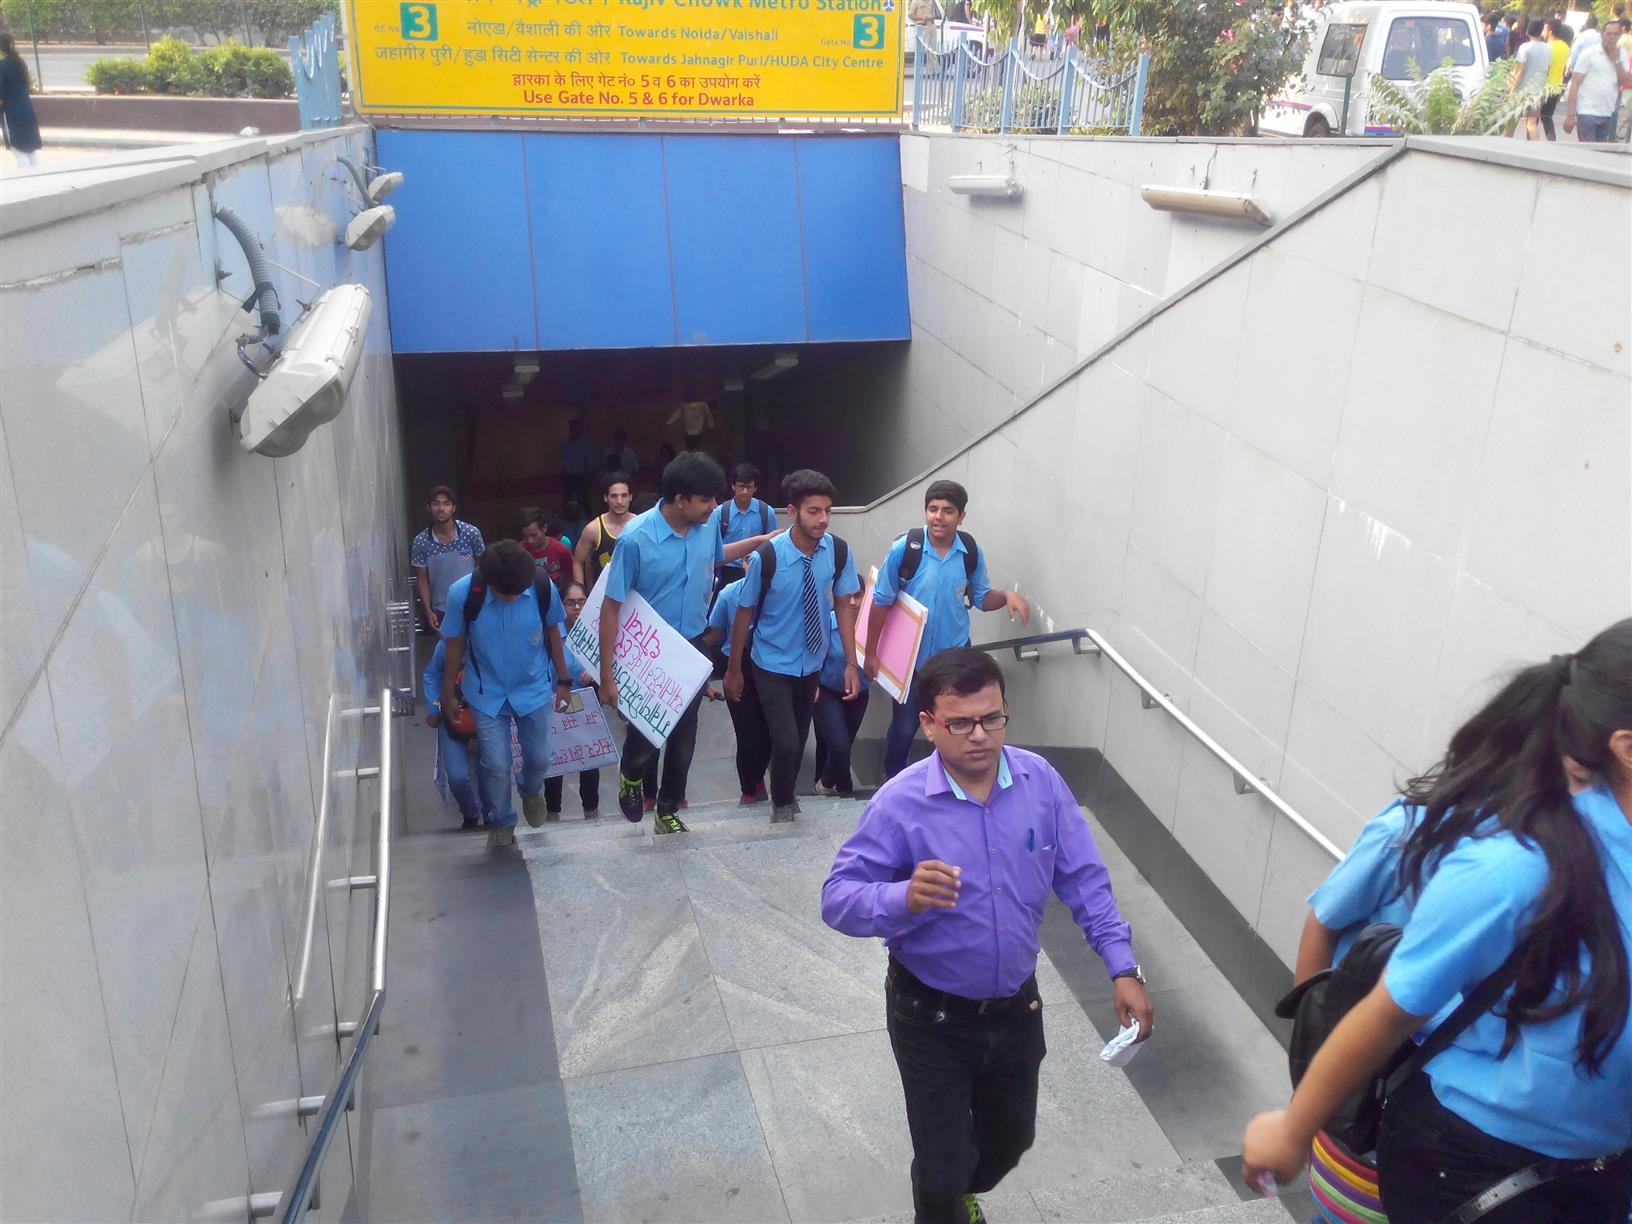 School students heading towards WED venue at Connaught Place, New Delhi on 5th June, 2016